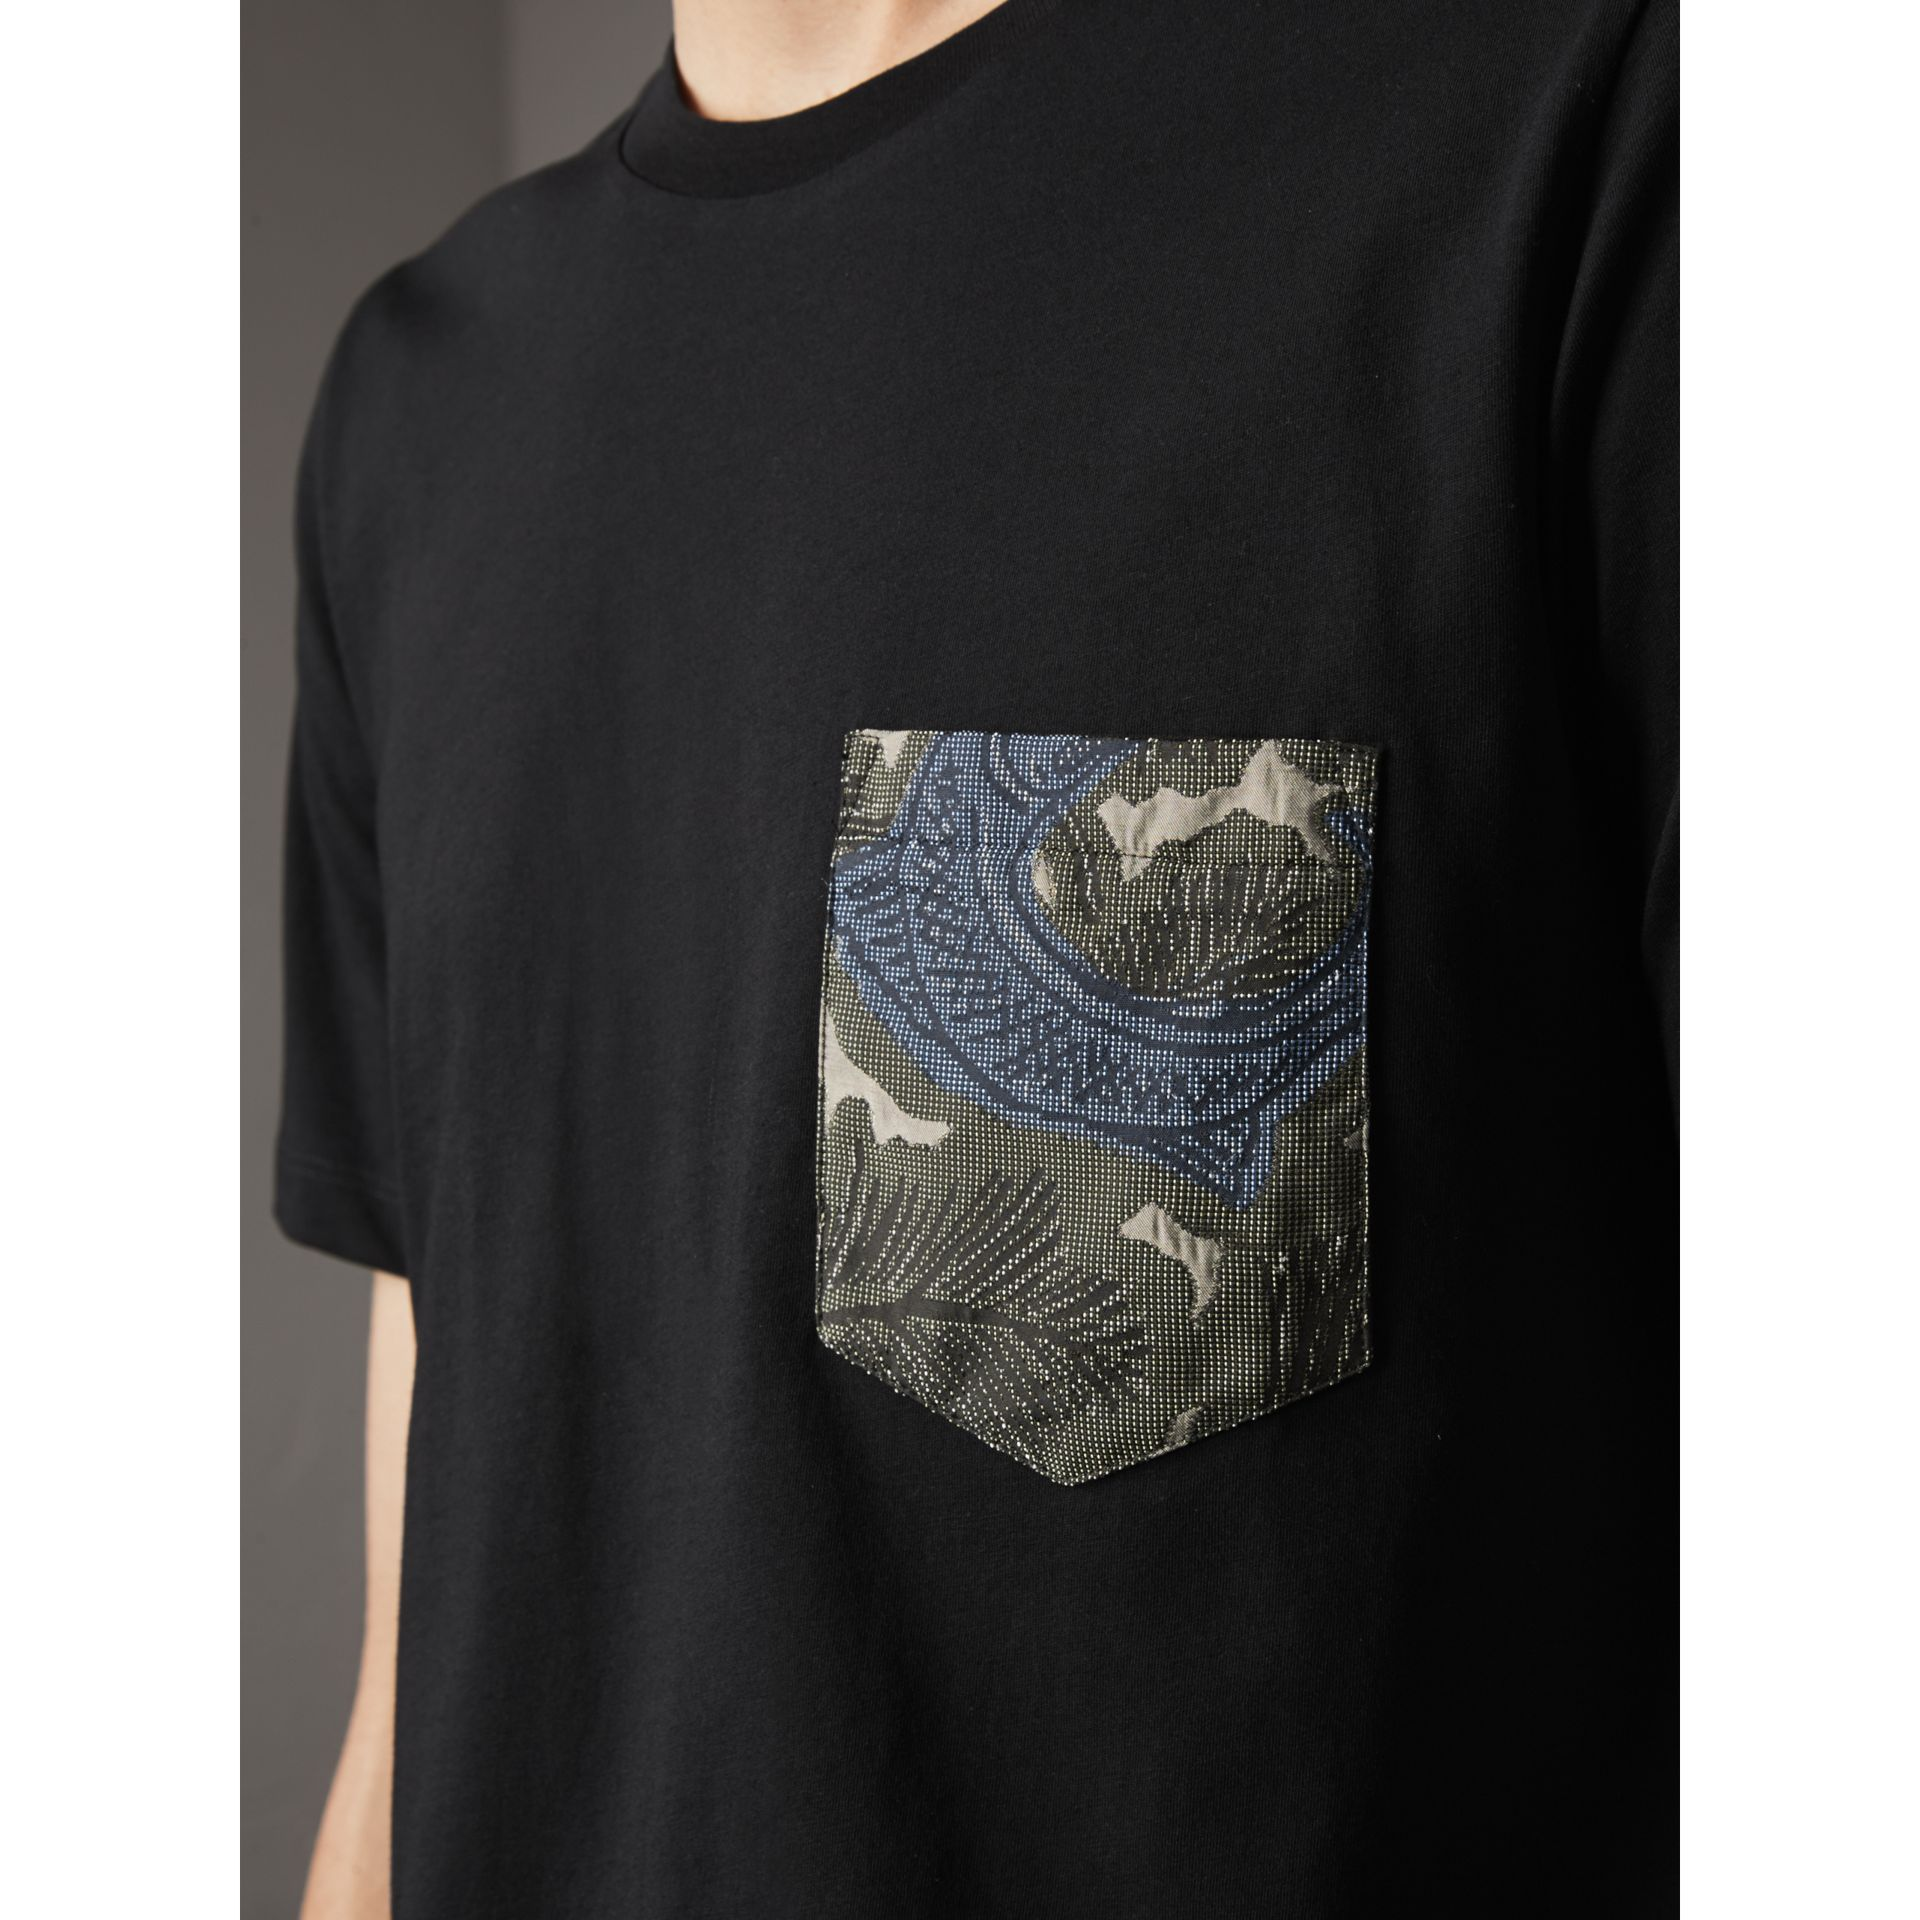 Beasts Jacquard Pocket Detail Cotton T-shirt in Black - Men | Burberry Australia - gallery image 2